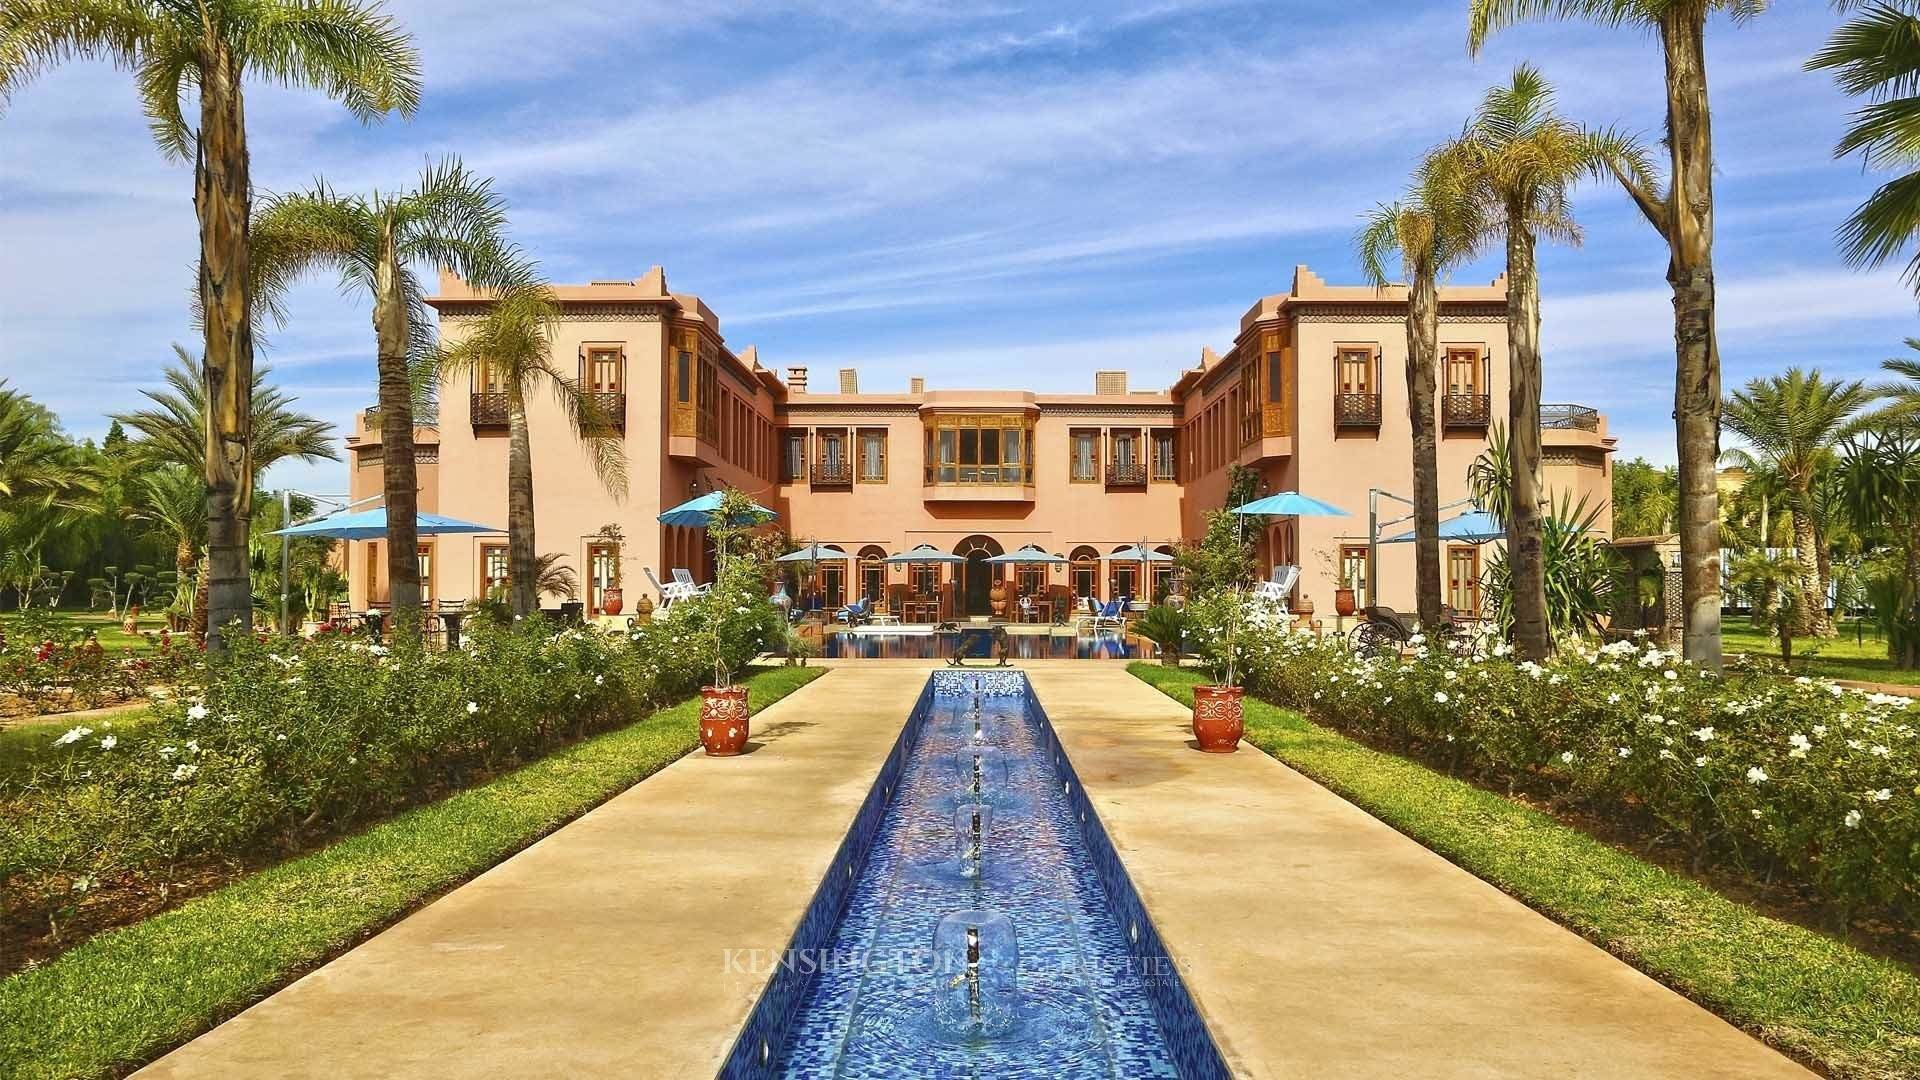 Villa/Townhouse for Sale at Palace Alinee Marrakesh, Marrakech,40000 Morocco